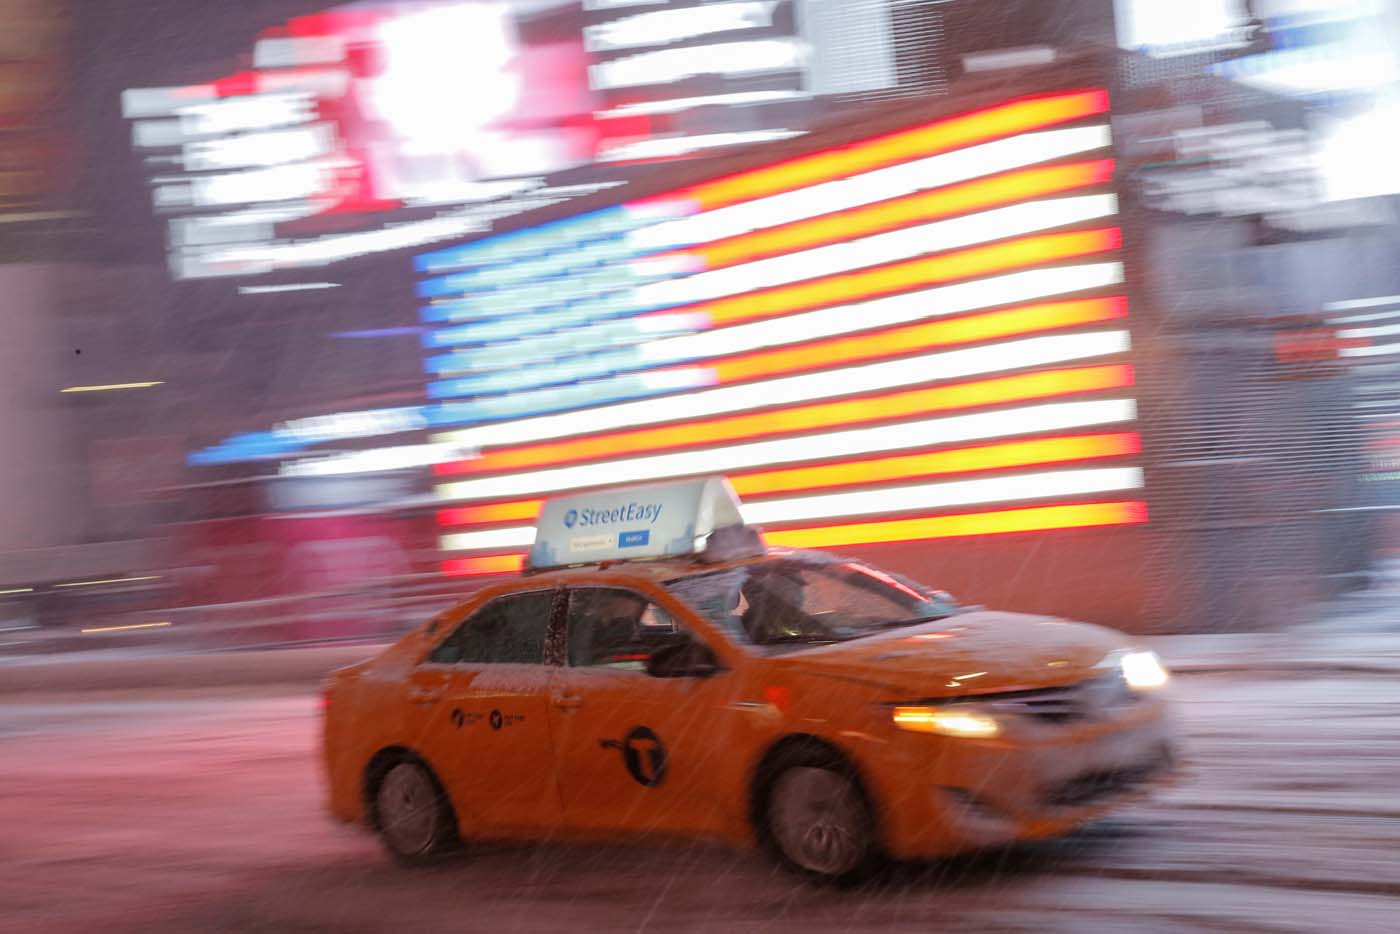 A taxi cab drives through Times Square as snow falls in Manhattan, New York, U.S., March 14, 2017. REUTERS/Andrew Kelly